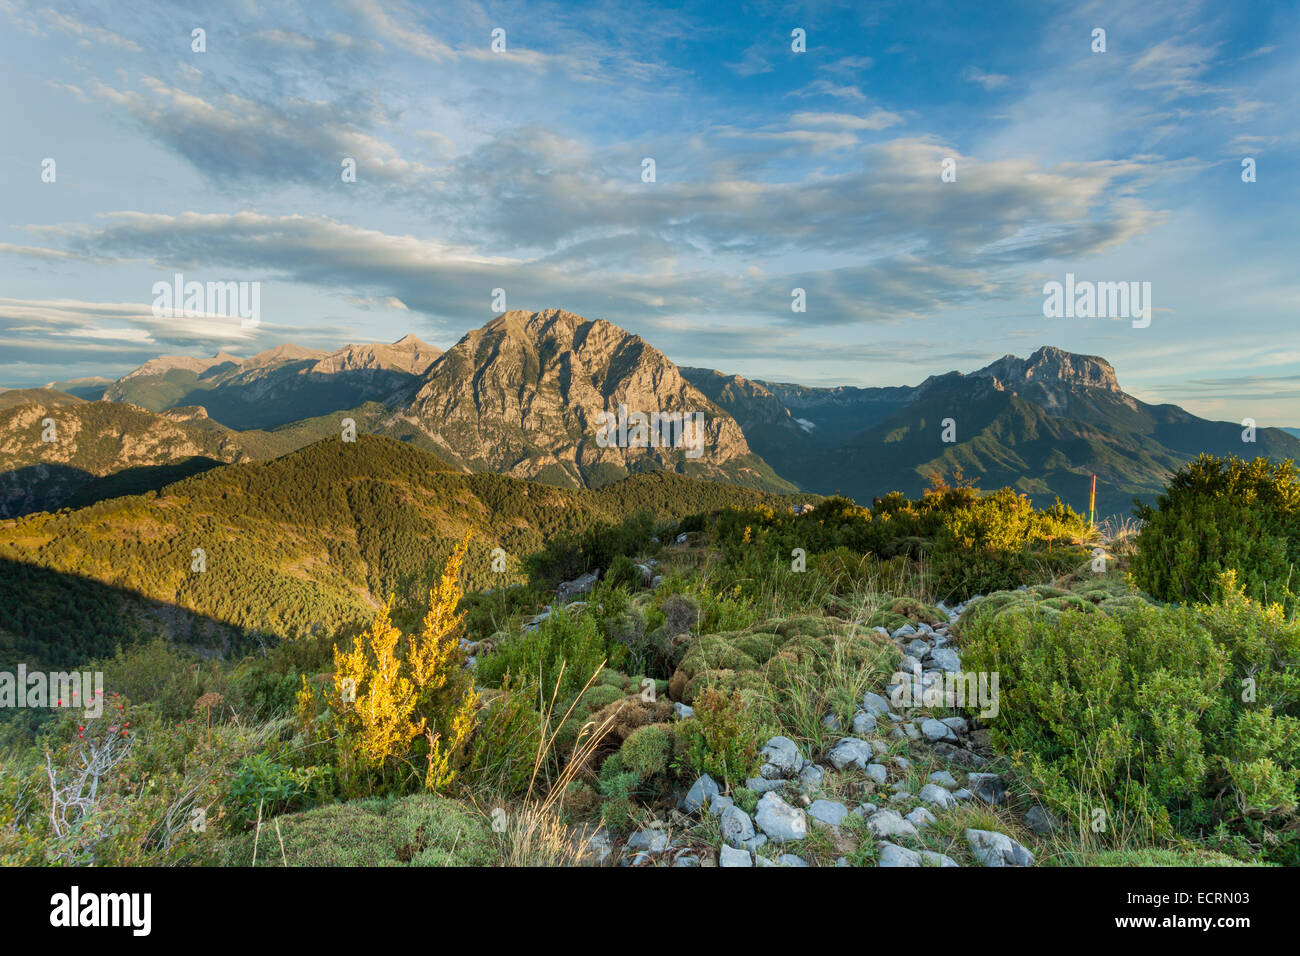 Pyrenees mountains near Tella, Huesca, Aragón, Spain. Stock Photo